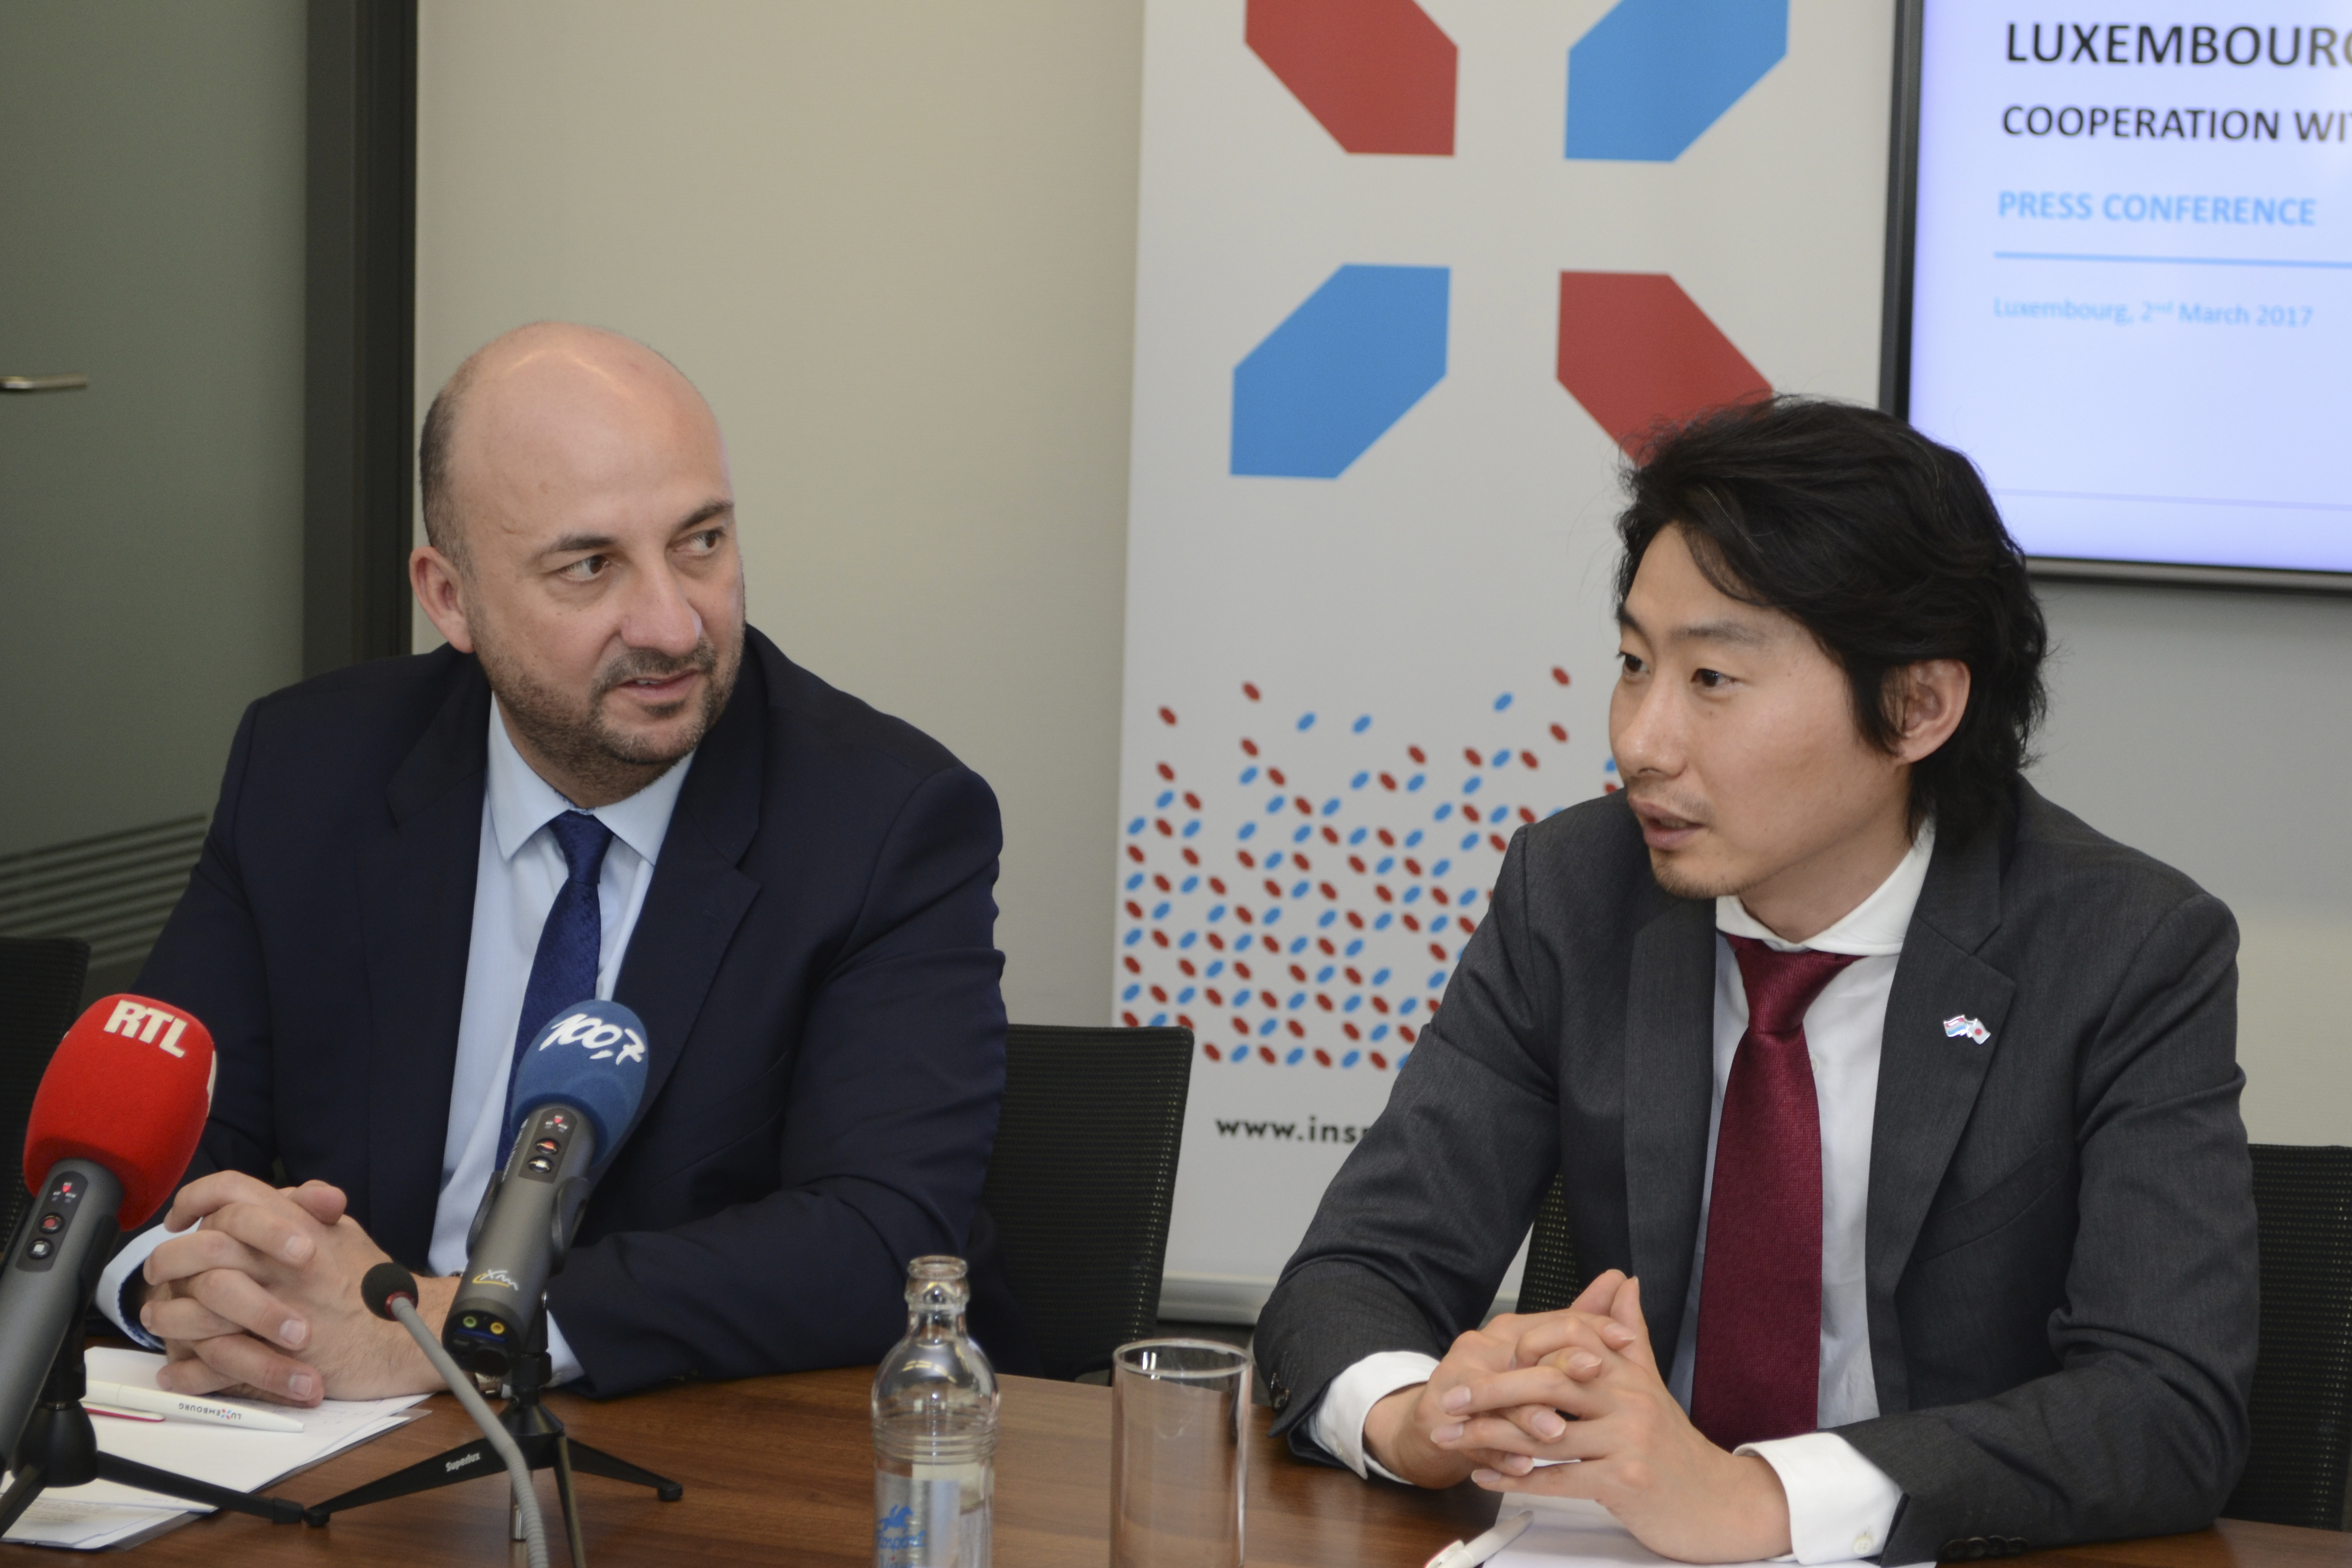 (from left to right) : Etienne Schneider, Deputy Prime Minister, Minister of the Economy of the Grand Duchy of Luxembourg ; Takeshi Hakamada, CEO of ispace (Photo:Business Wire)